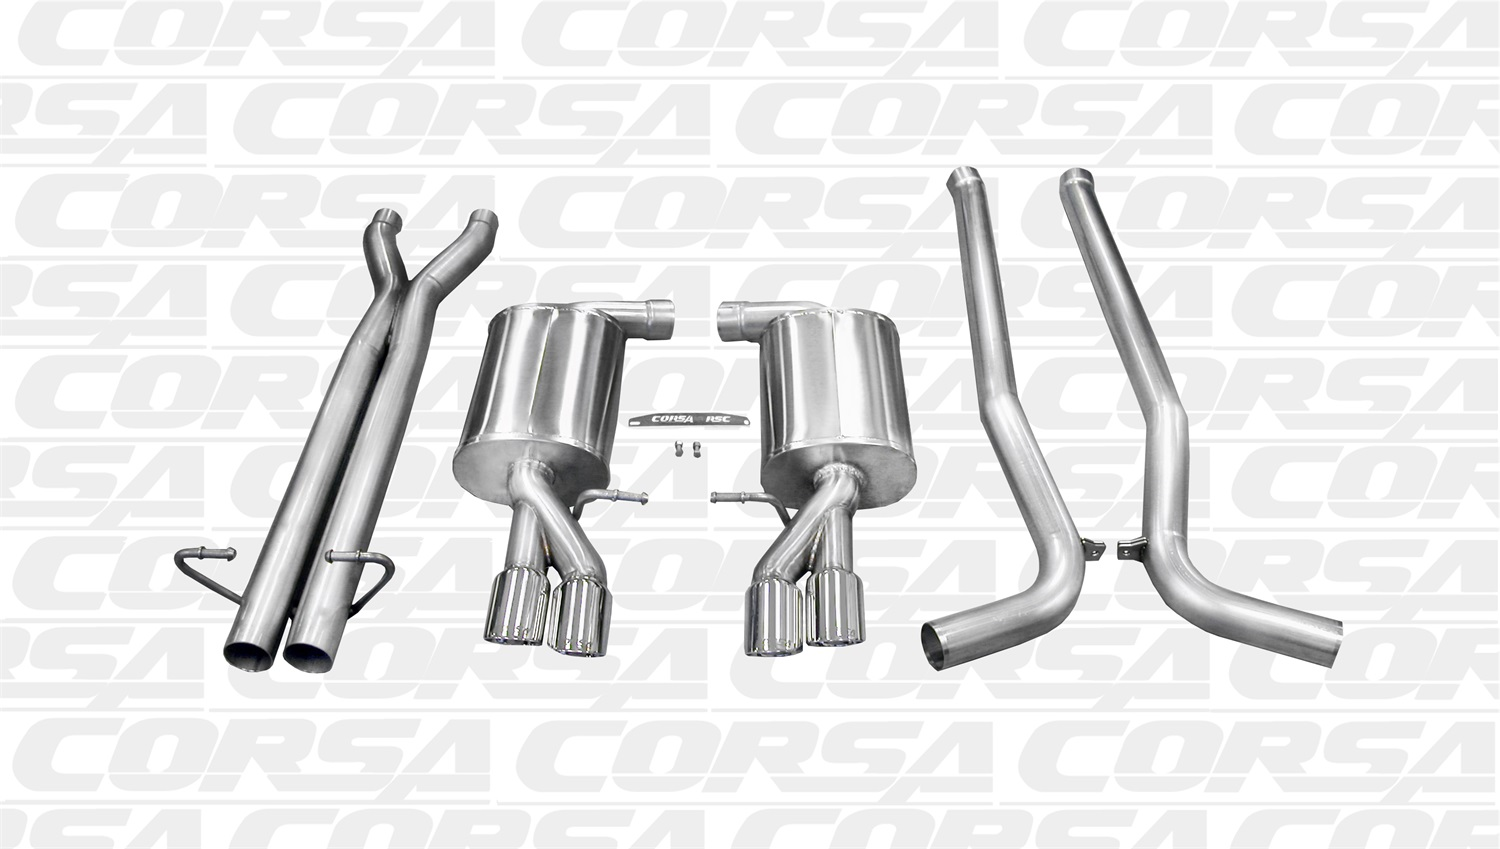 Corsa Performance 14540 Sport Cat-Back Exhaust System Fits 05-09 S4